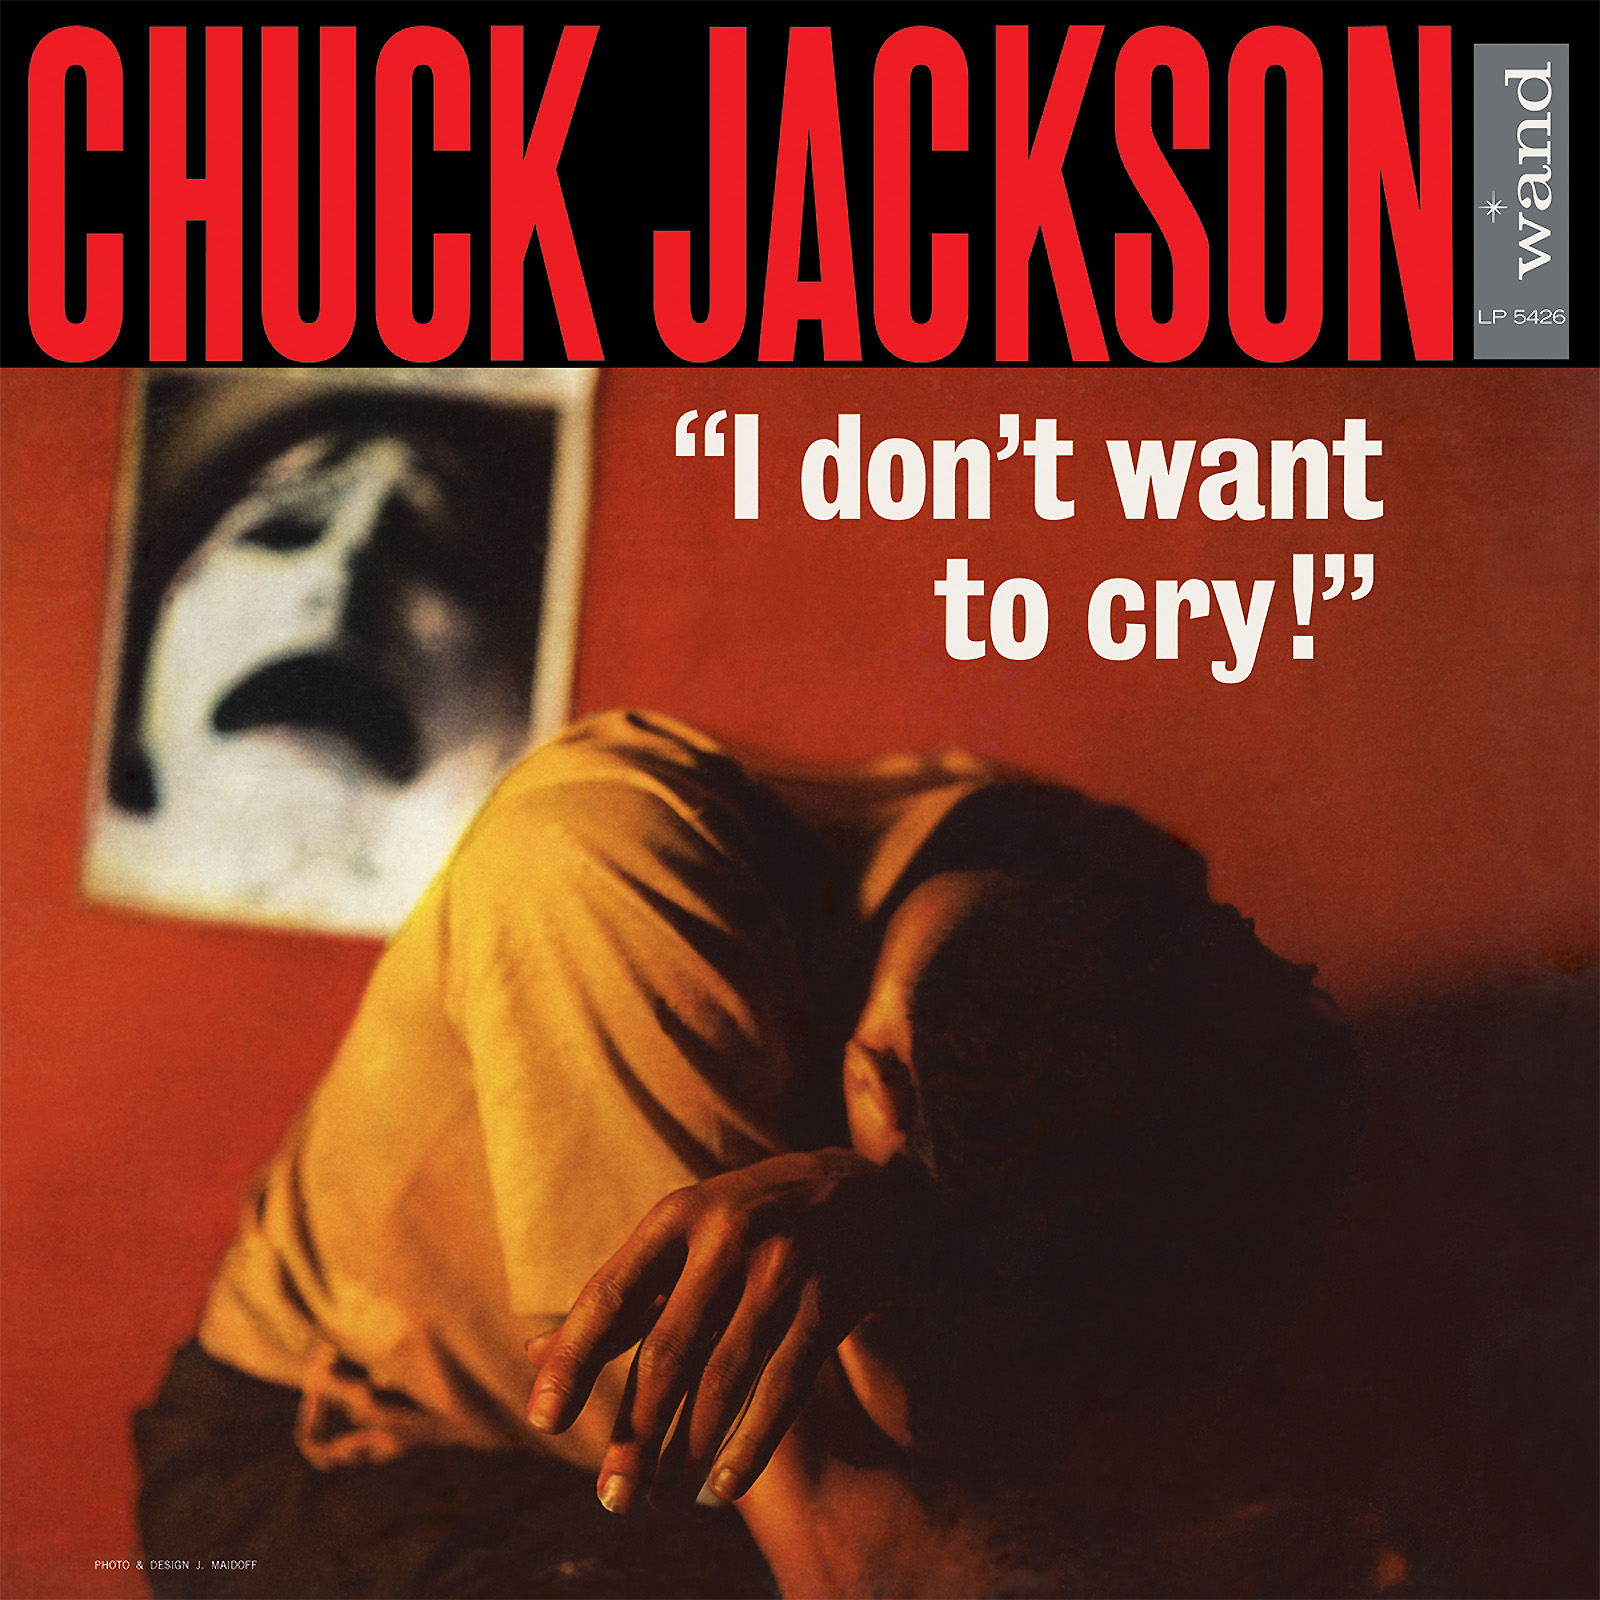 Jackson, Chuck - I Don't Want To Cry - LP